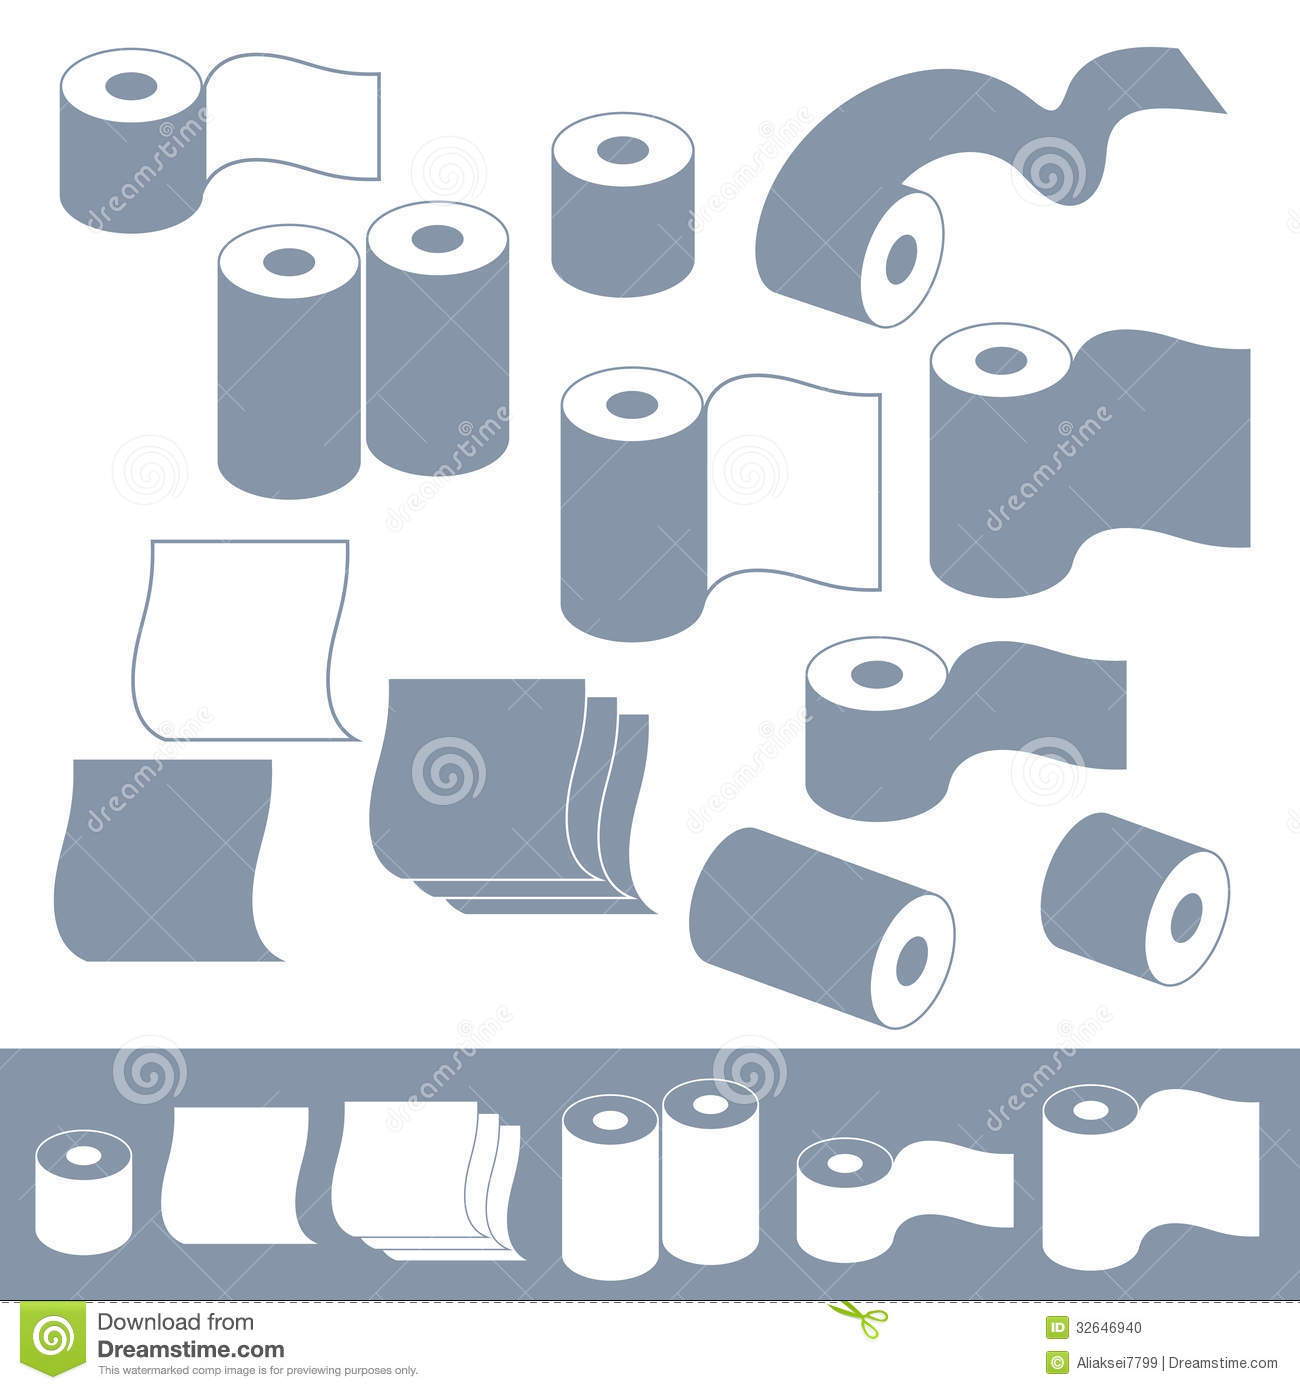 Toilet Paper  Set  Isolated objects on white background  Vector. Toilet Paper Vector